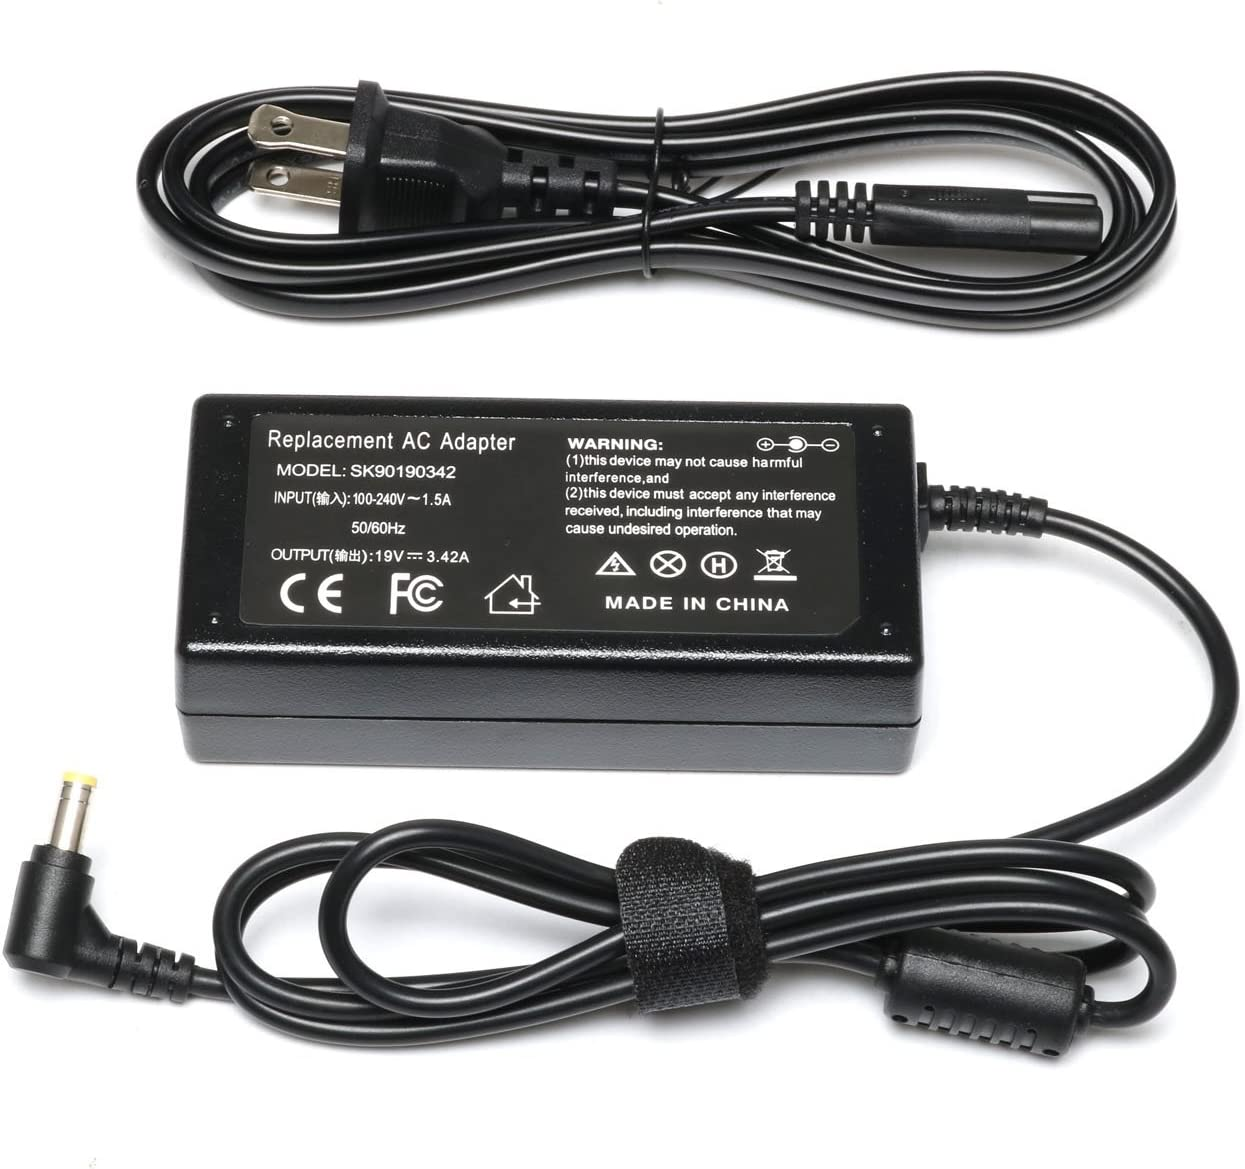 19v 3.42A Laptop Charger AC Adapter for Toshiba Satellite C55 C655 C850 C50 L755 C855 L655 L745 P50 C855D C55D S55;Toshiba Portege Z30 Z930 Z830;Satellite Radius 11 14 15 Power Supply Cord